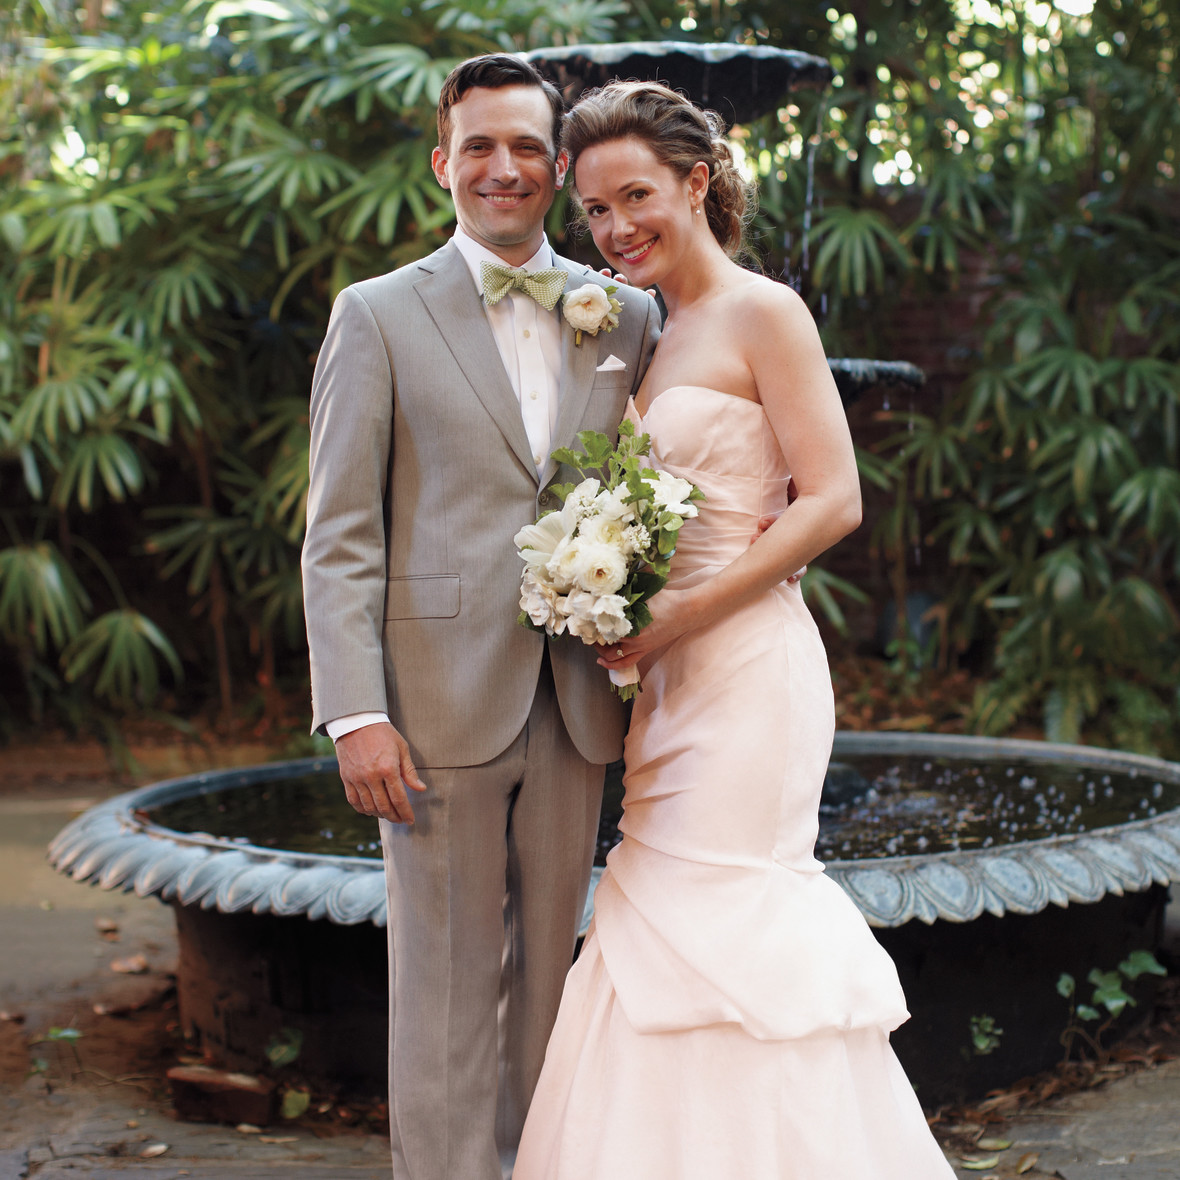 Wedding Gowns New Orleans: A Pink-and-Green Whimsical Wedding In New Orleans